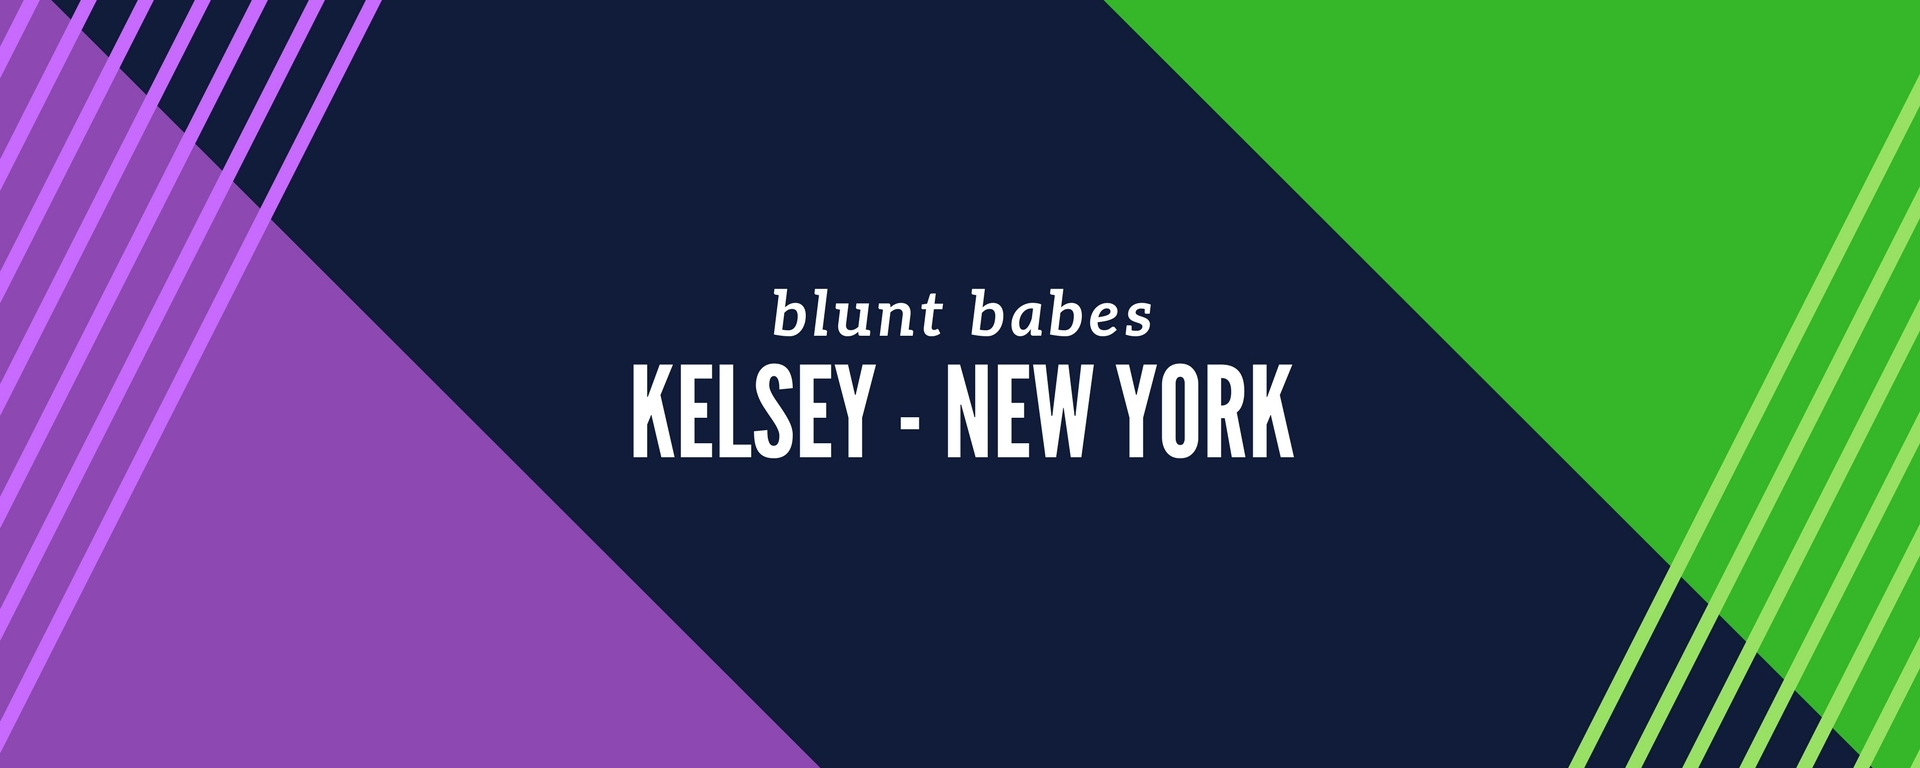 heyhellohigh-blunt-babes-kelsey-new-york-interview